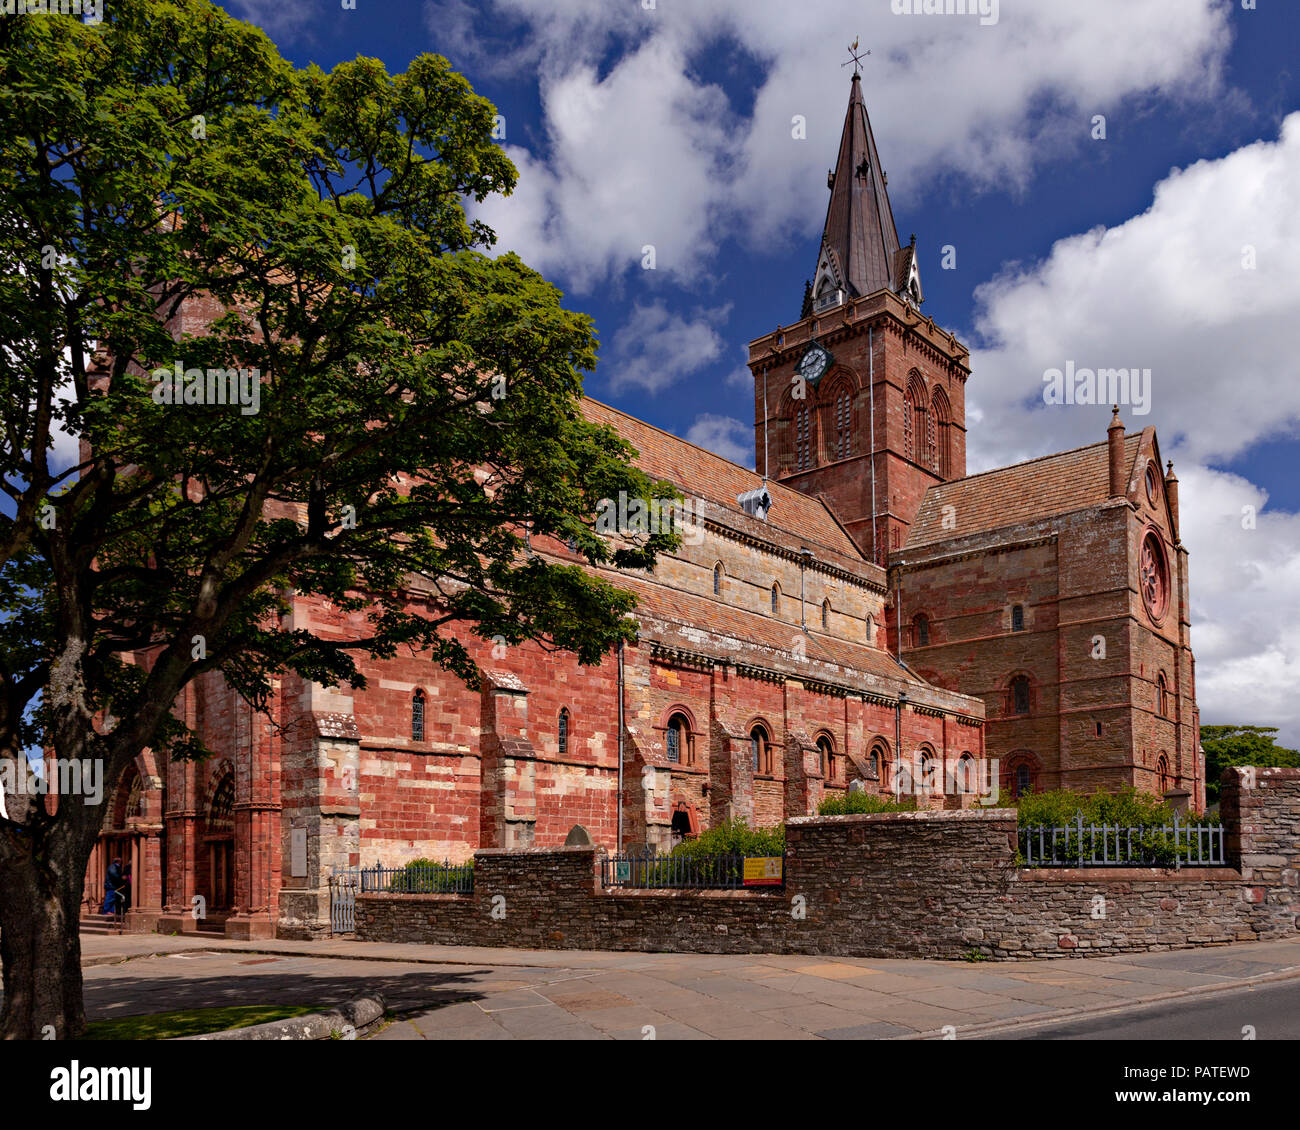 St Magnus cathedral, Kirkwall, Orkney, Scotland on a sunny day - Stock Image